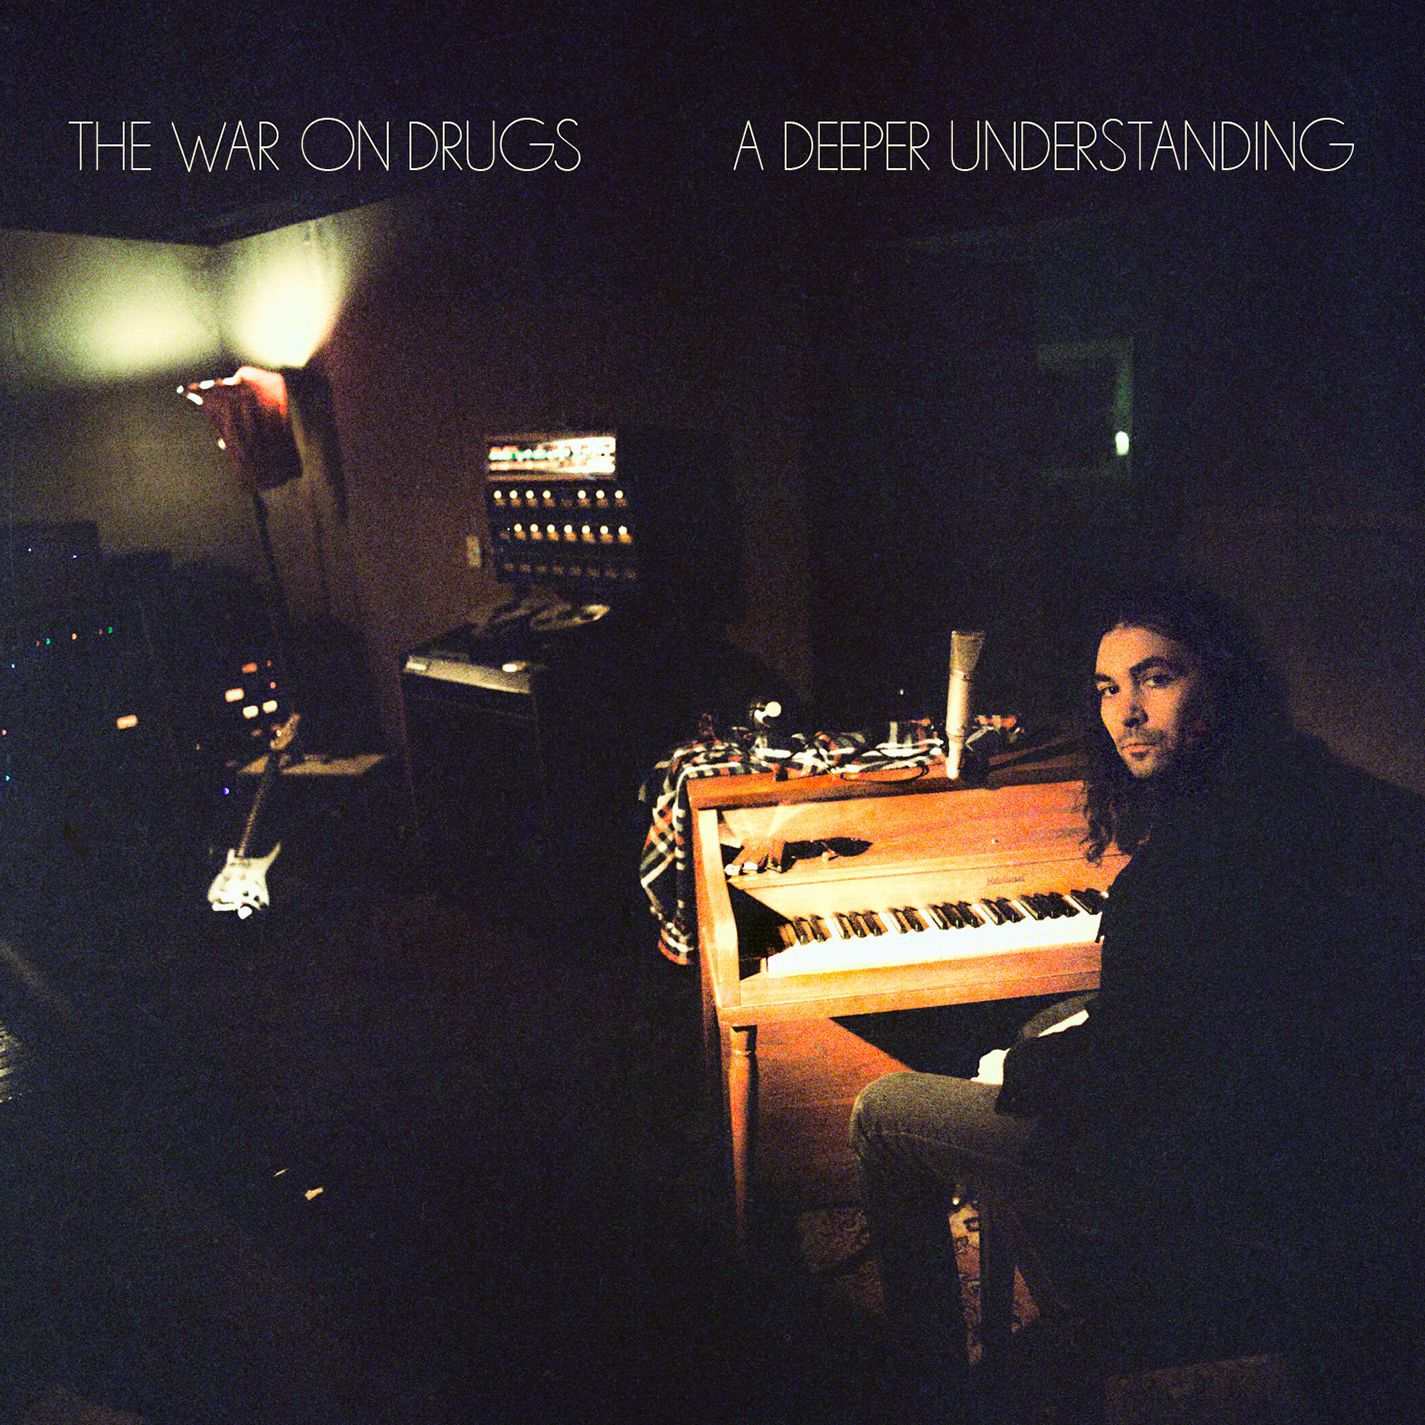 The War On Drugs - A Deeper Understanding album cover